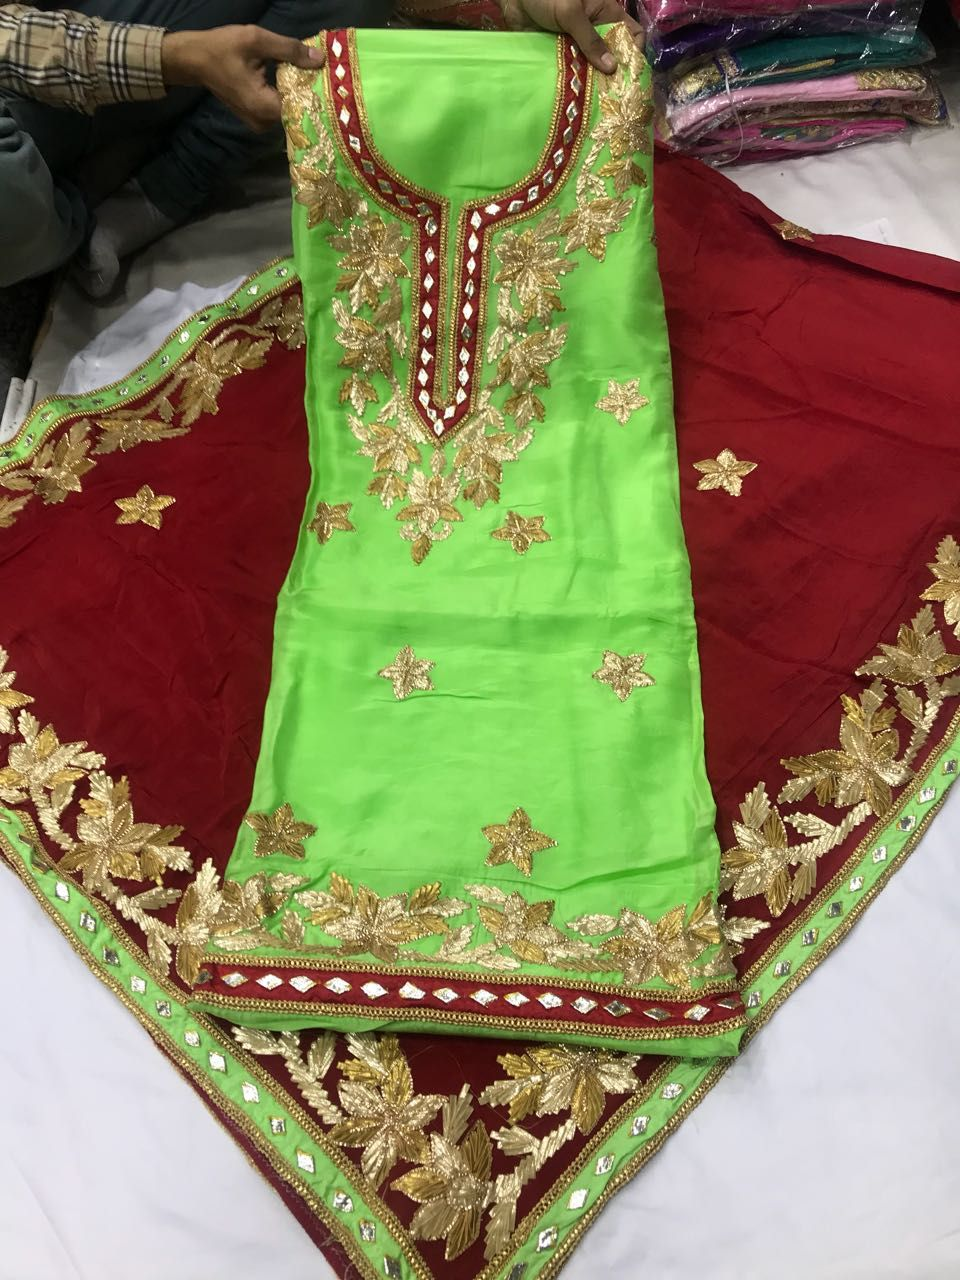 b15a57afc340dc we deal punjabi salwar suit for purchase 9501263212 international delivery  available....  punjabisuit  salwarsuit  salwarsuitdesign  rajafashion